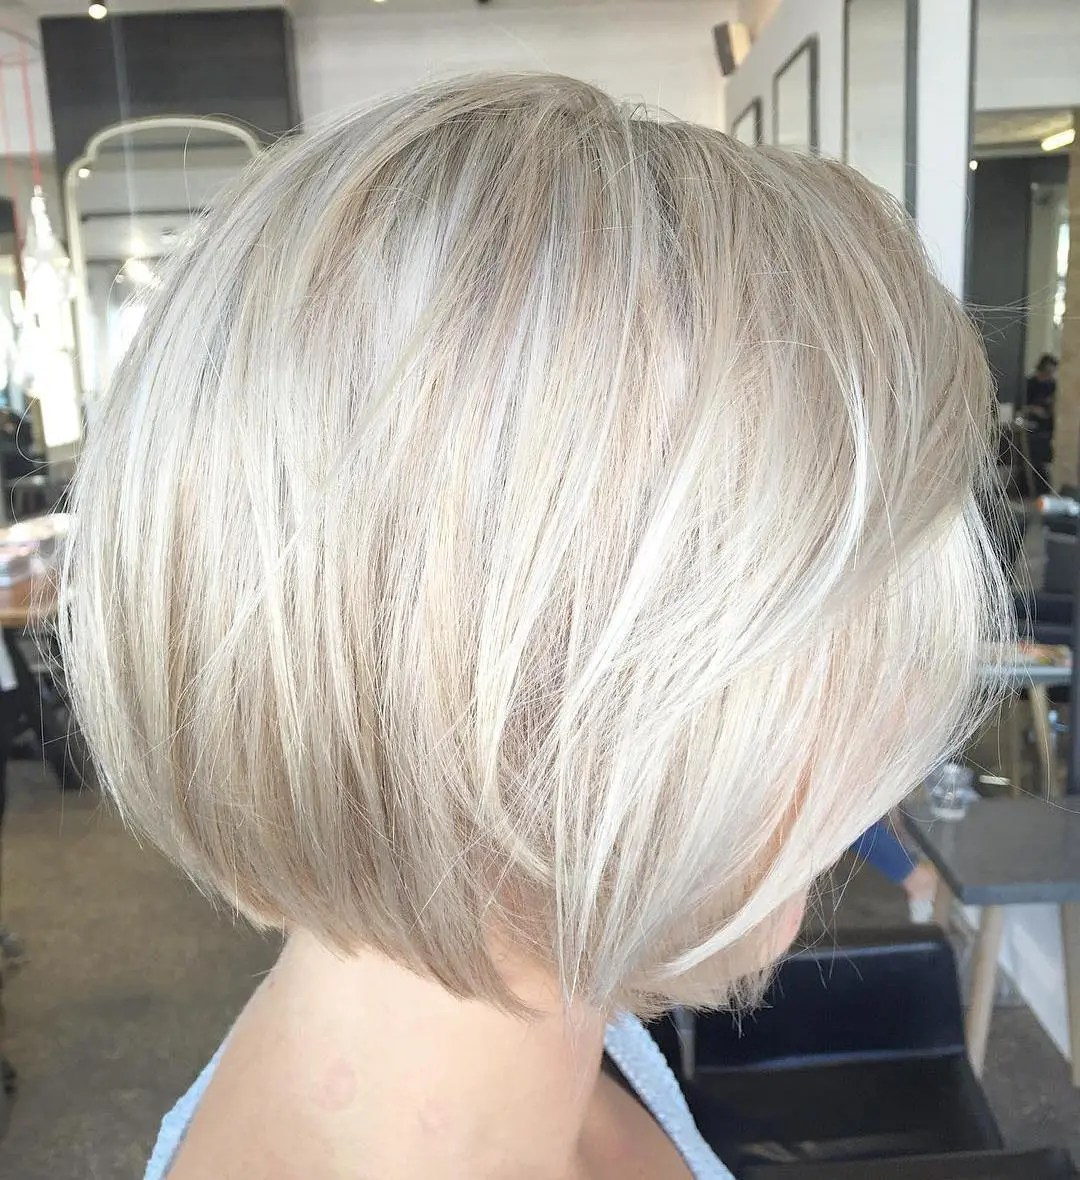 Chin-Length Bob with Fine Layers